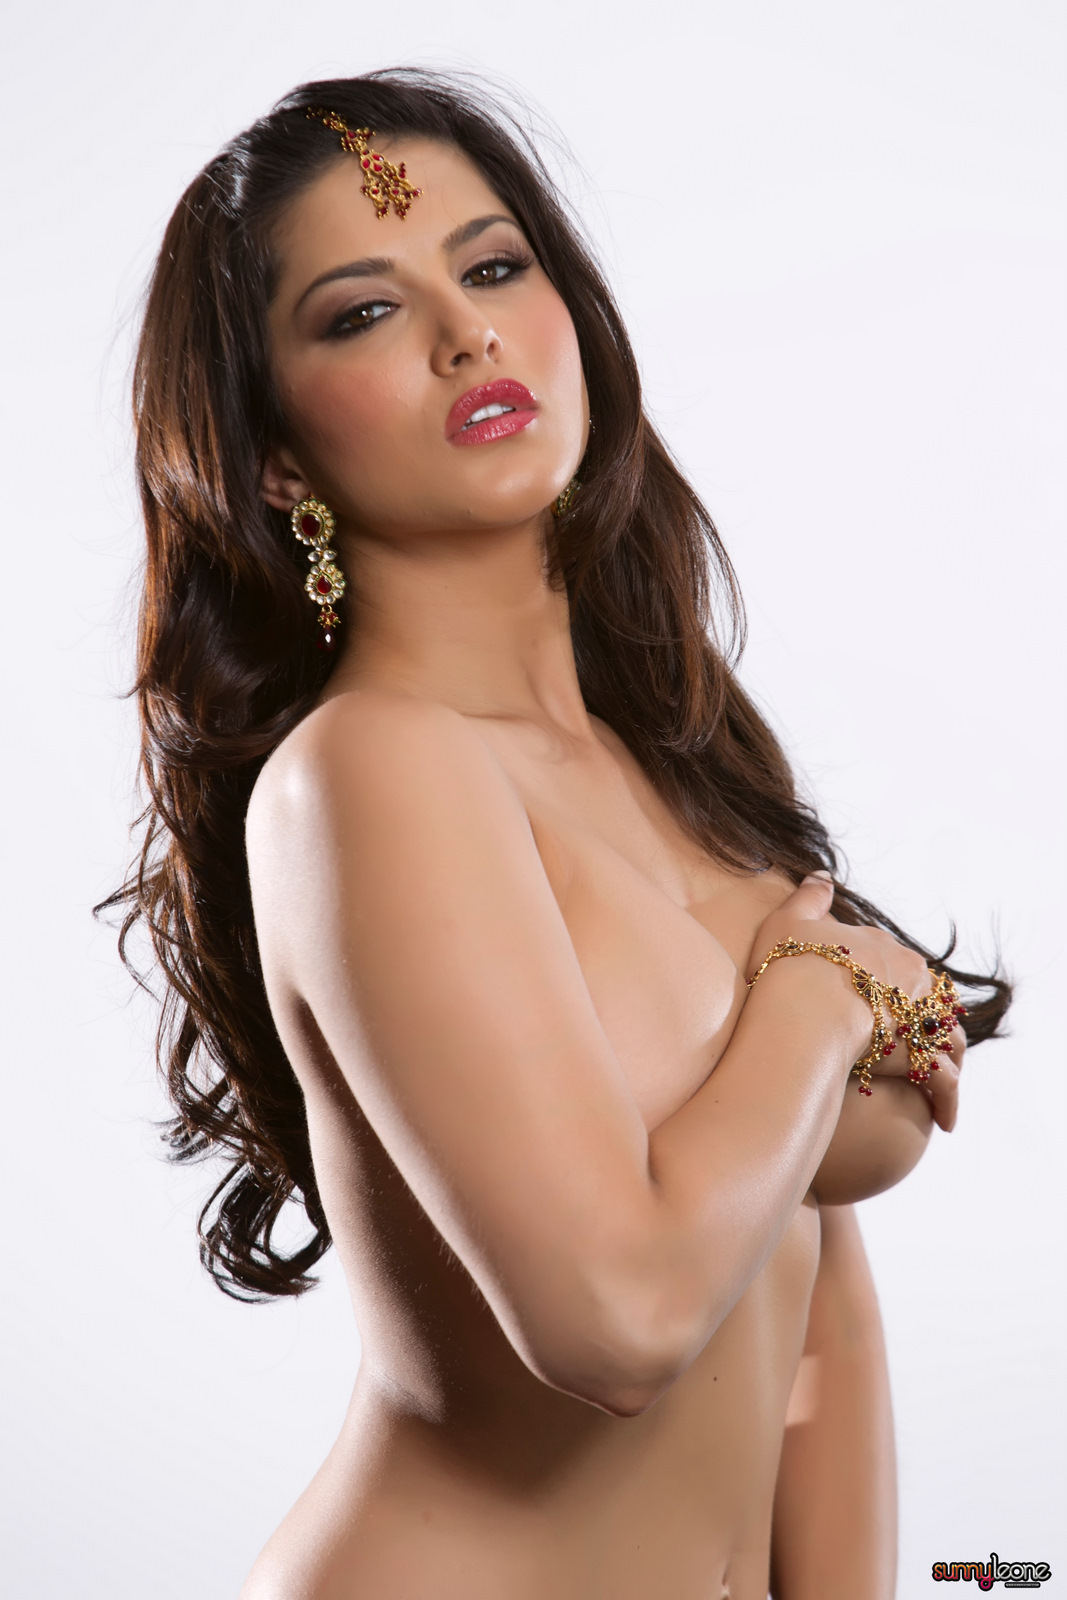 Sunny Leone Without Clothes Kamapisachi | MEJOR CONJUNTO DE FRASES